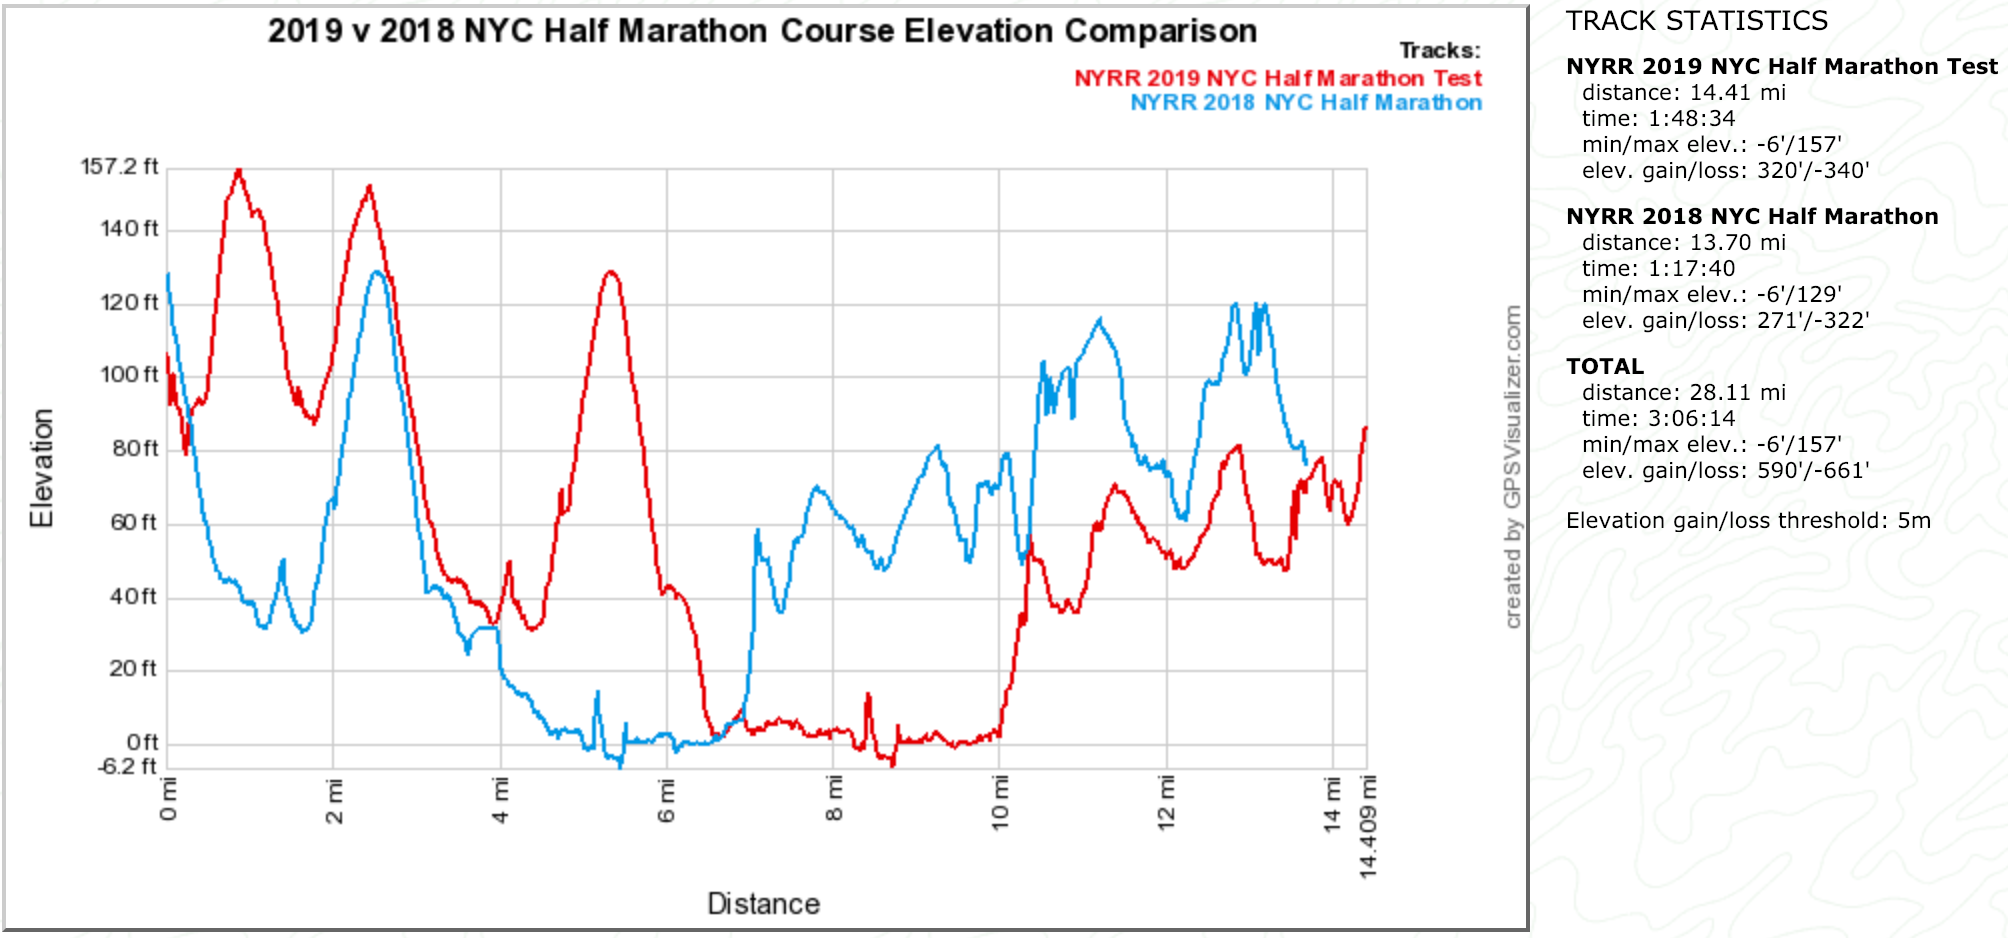 2019 v 2018 NYC Half Marathon Course Elevation Comparison